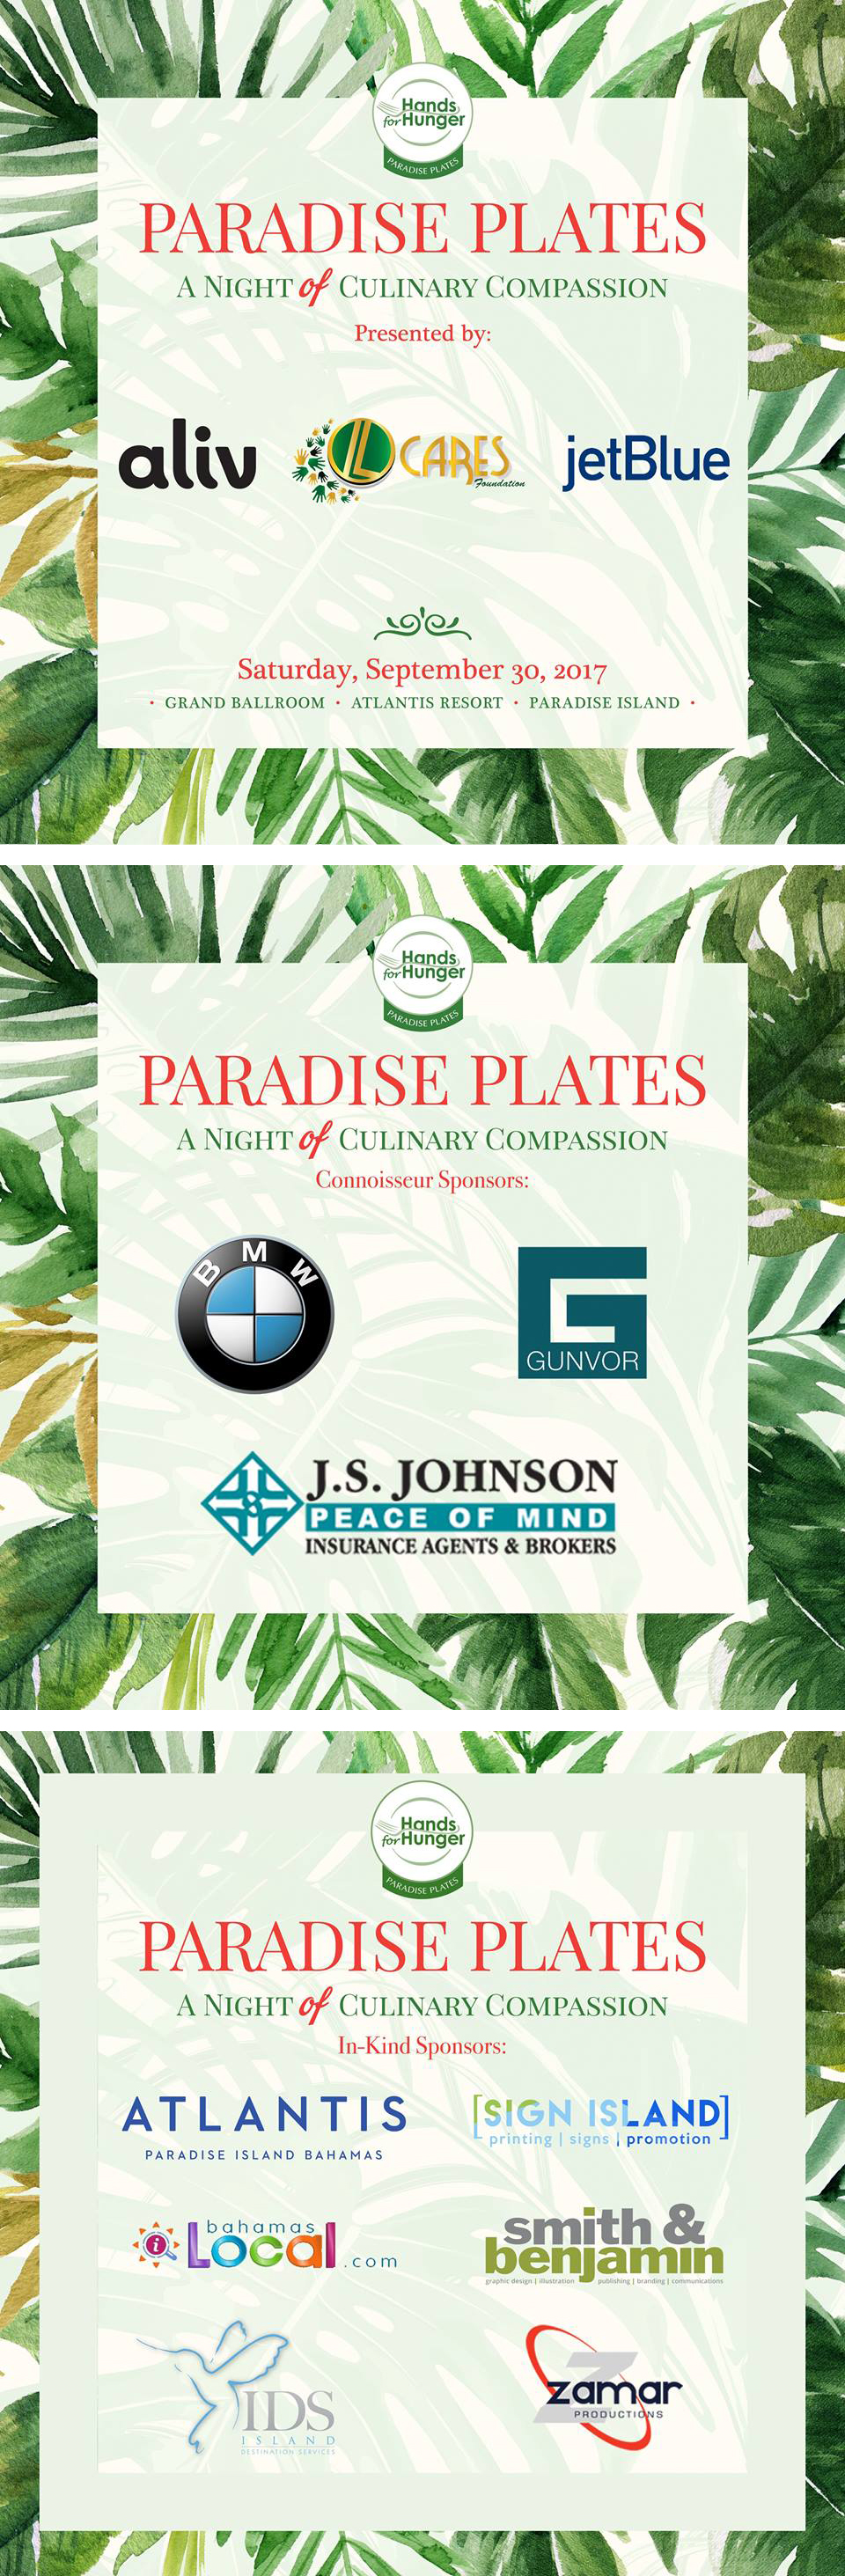 Paradise Plates Sponsors | Save The Date